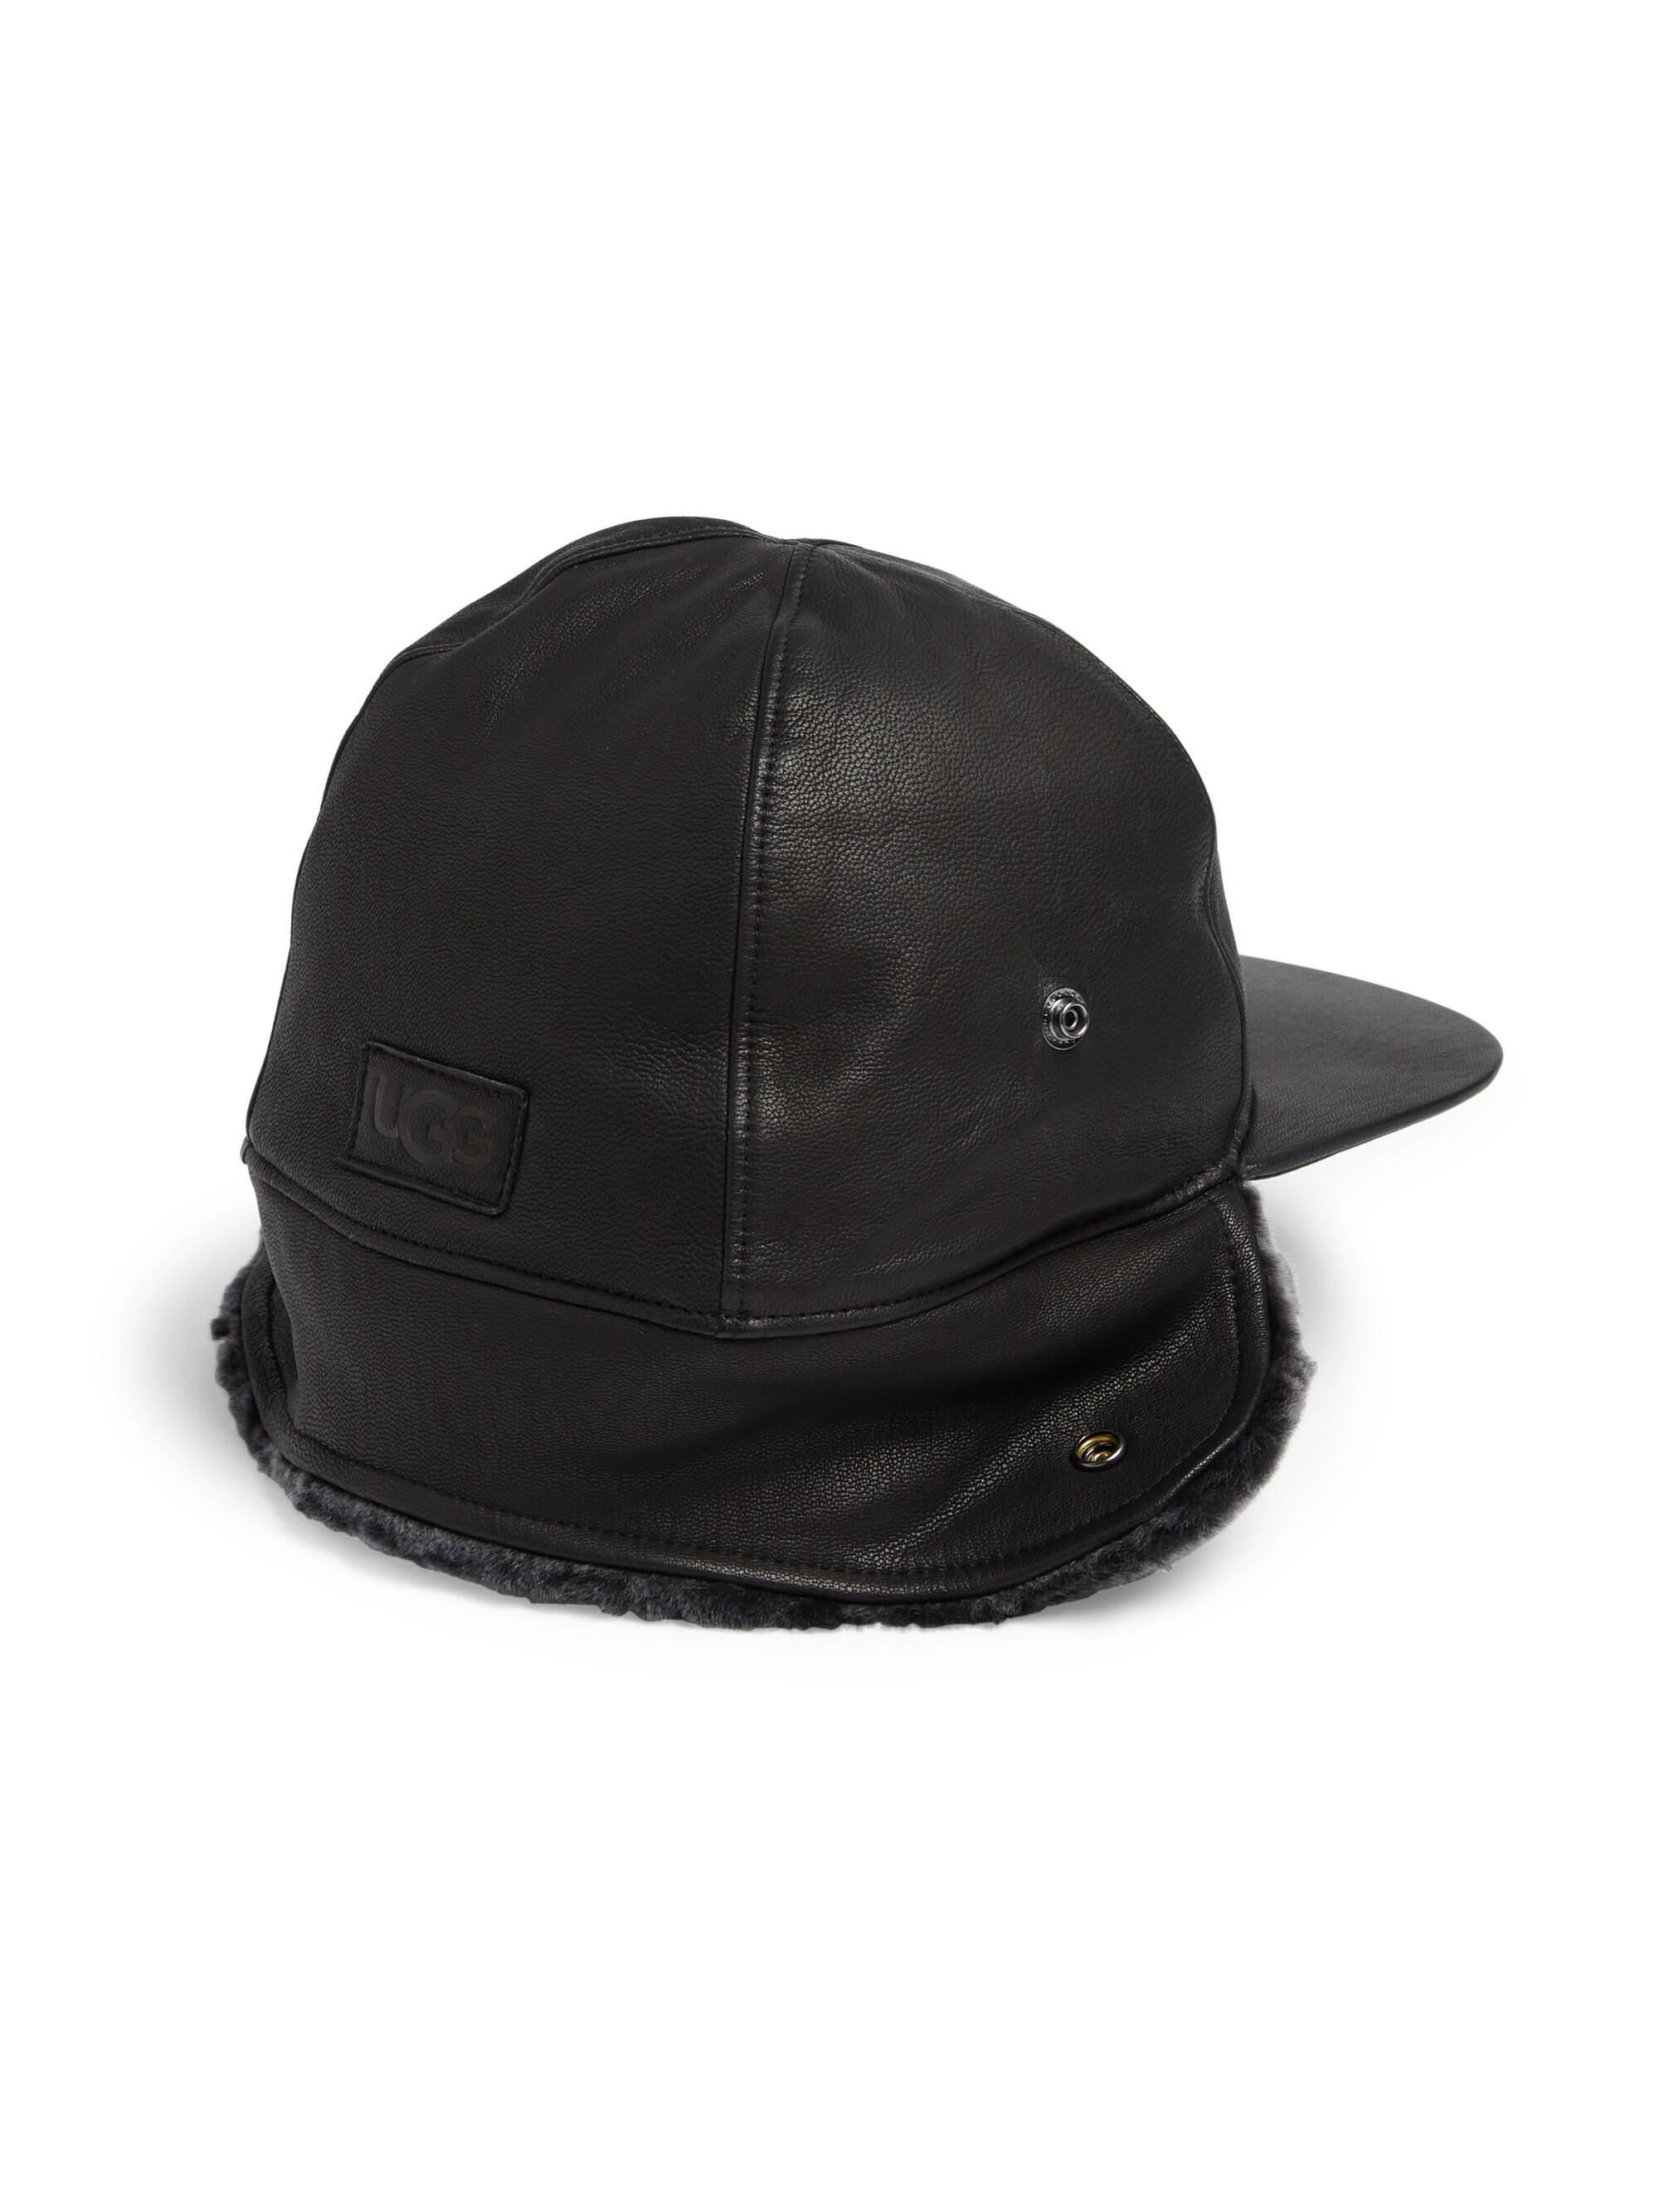 15bf6a915 Ugg Black Shearling-trim & Faux Fur-lined Leather Baseball Hat for men